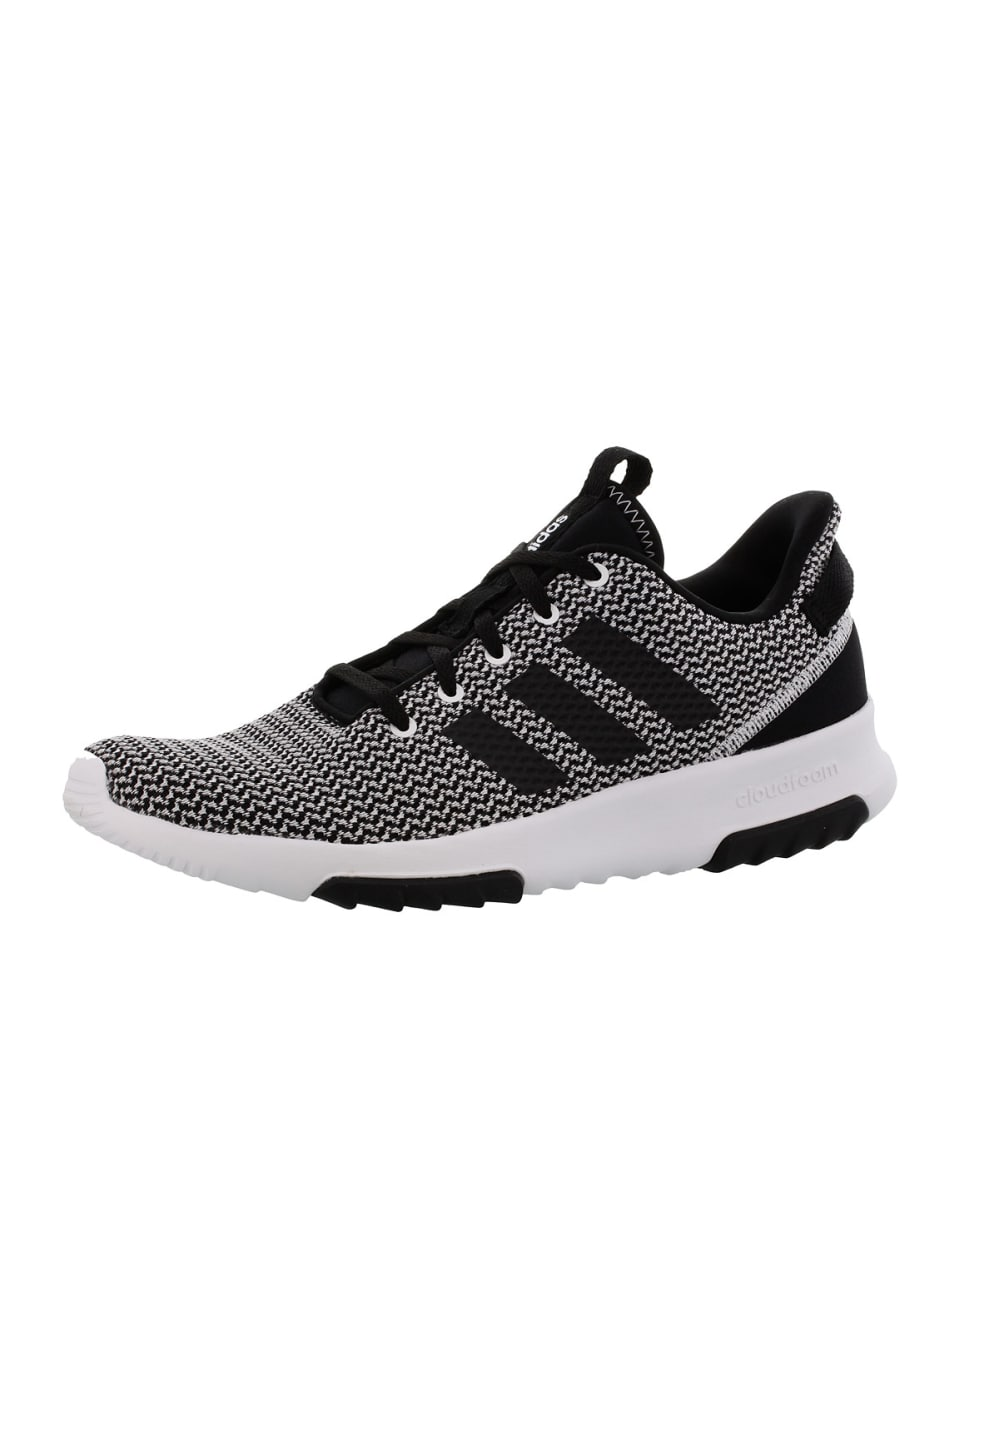 adidas neo Cloudfoam Racer TR Chaussures running pour Homme Gris